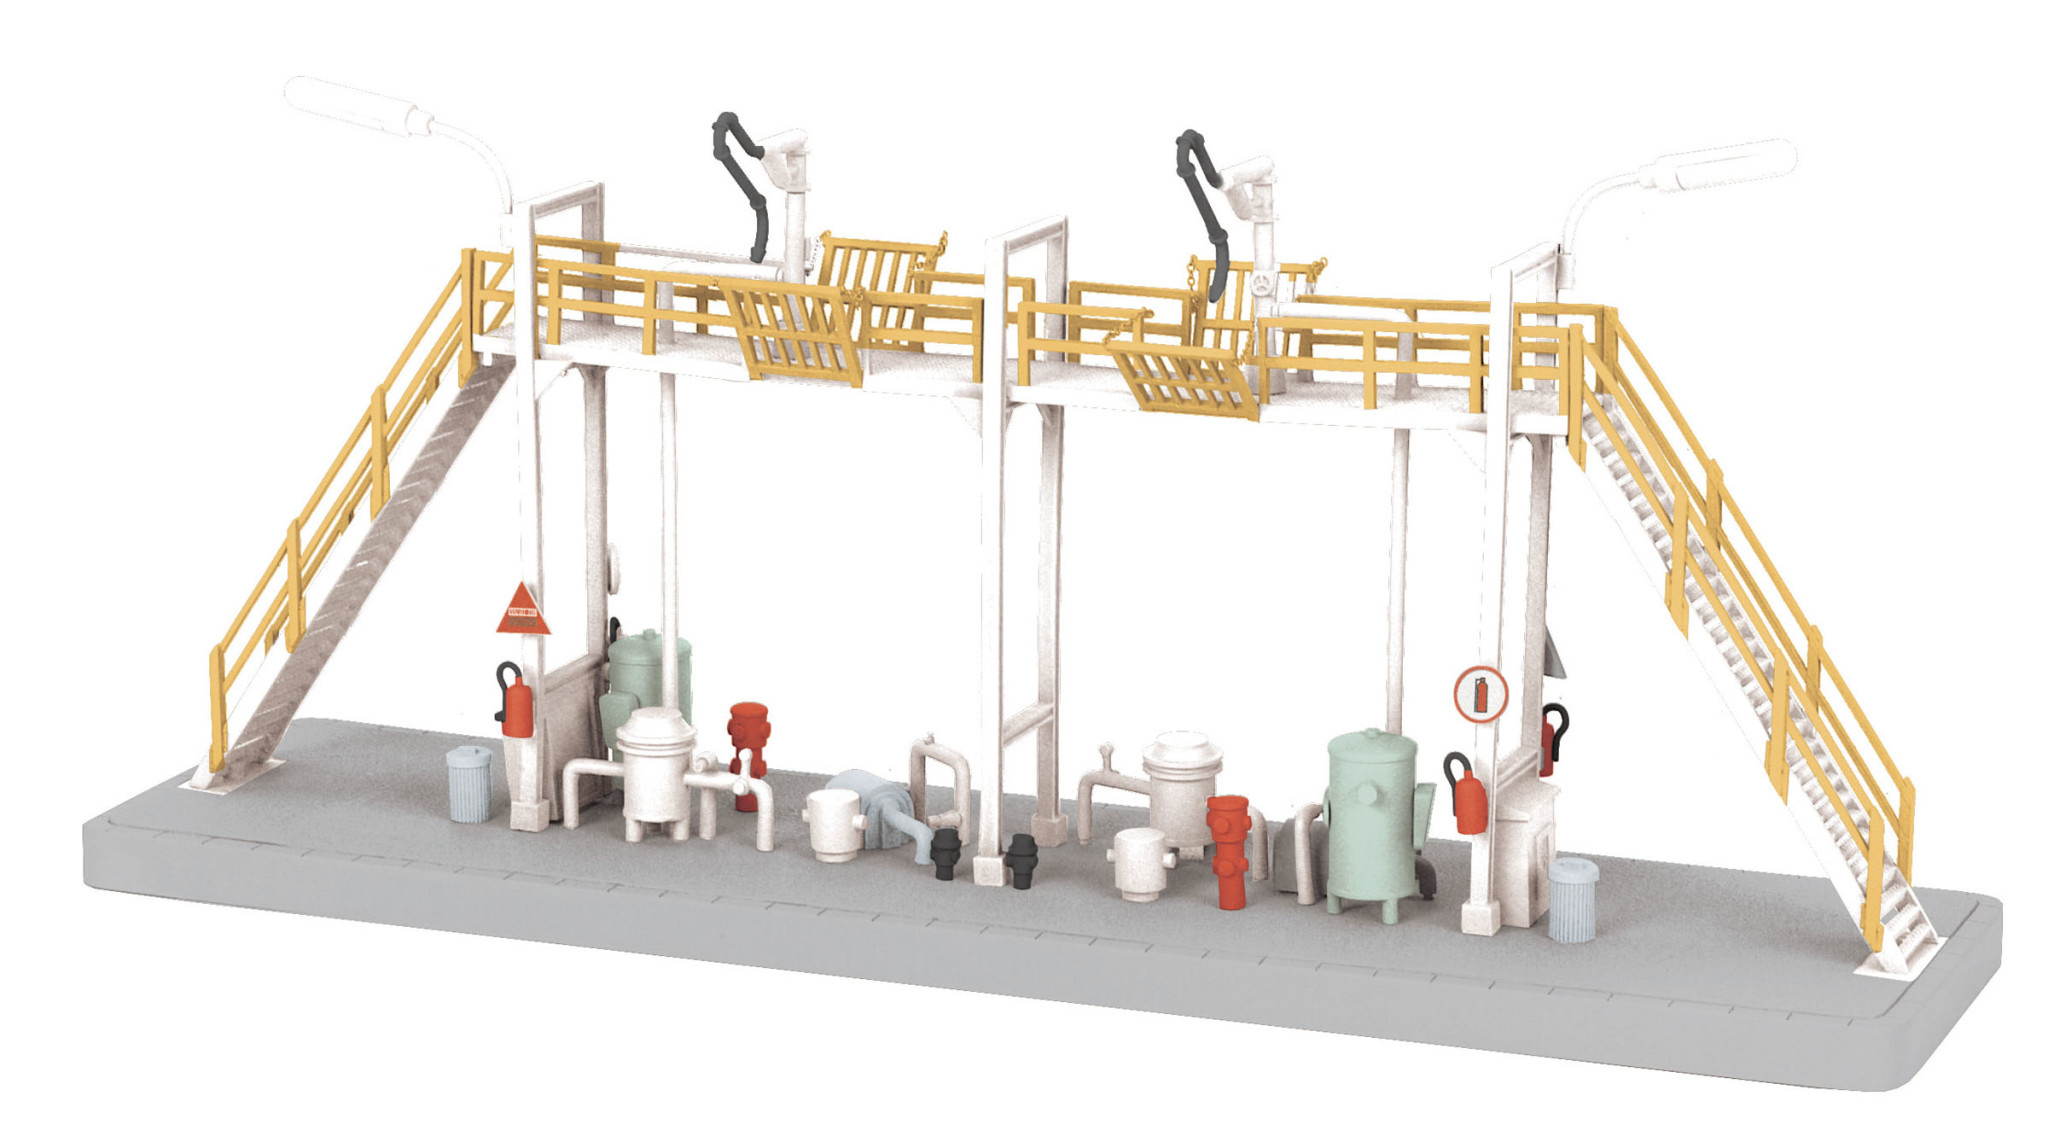 3090472	 - SHELL TANK FILLING STATION